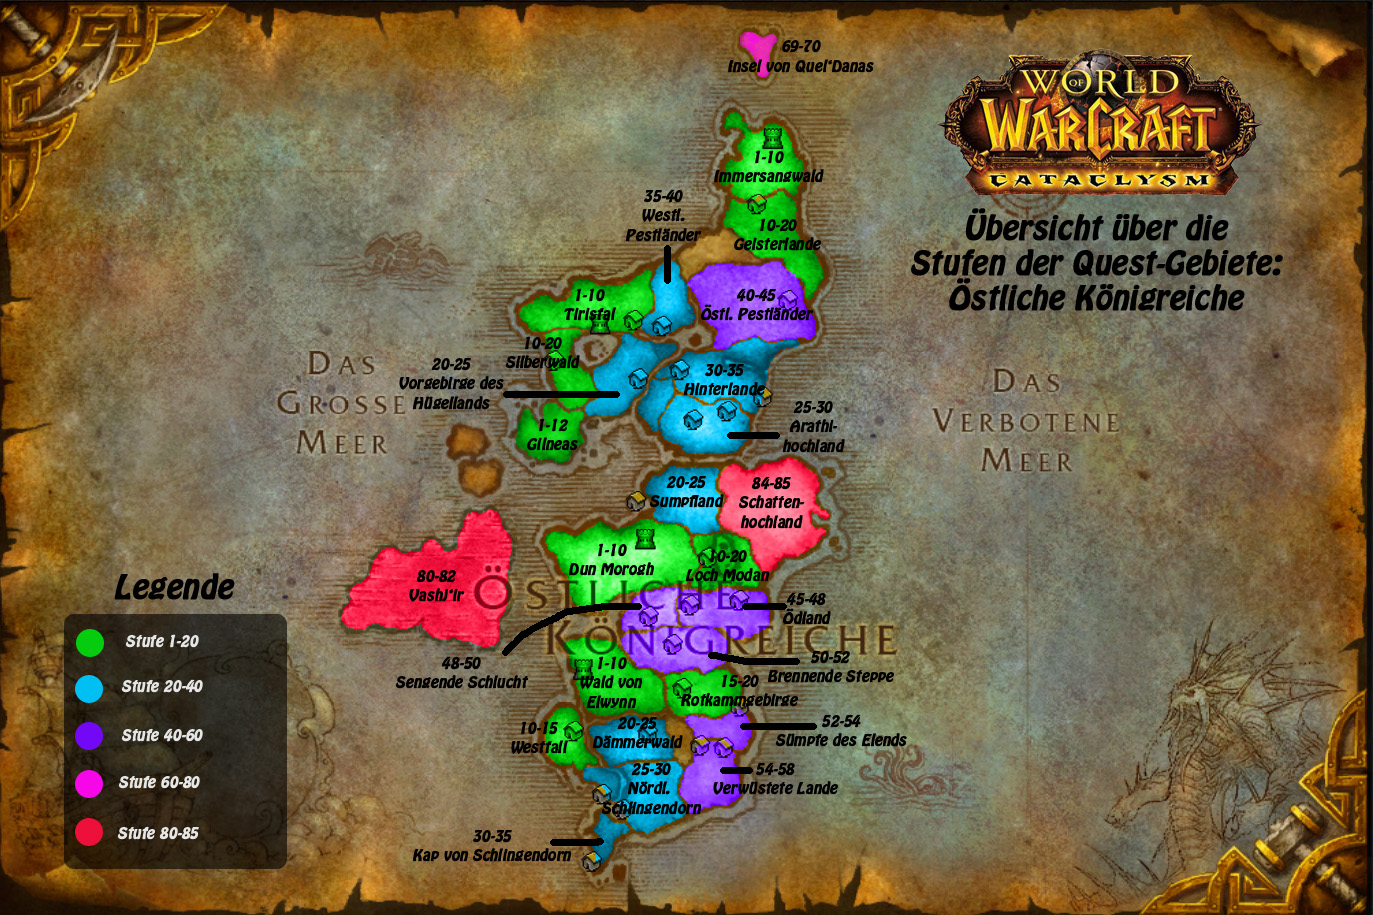 download map warcraft with Wow Wohin Zum Leveln In Cataclysm Uebersicht Ueber Die Stufenanforderungen Der Quest Gebiete 802232 on Icecrown Citadel In Minecraft Alpha Wip likewise Crafting azeroth wow map v10 released over 2x the as well World Map Typography Wallpaper 3660 together with Showthread besides Video games minecraft castle.